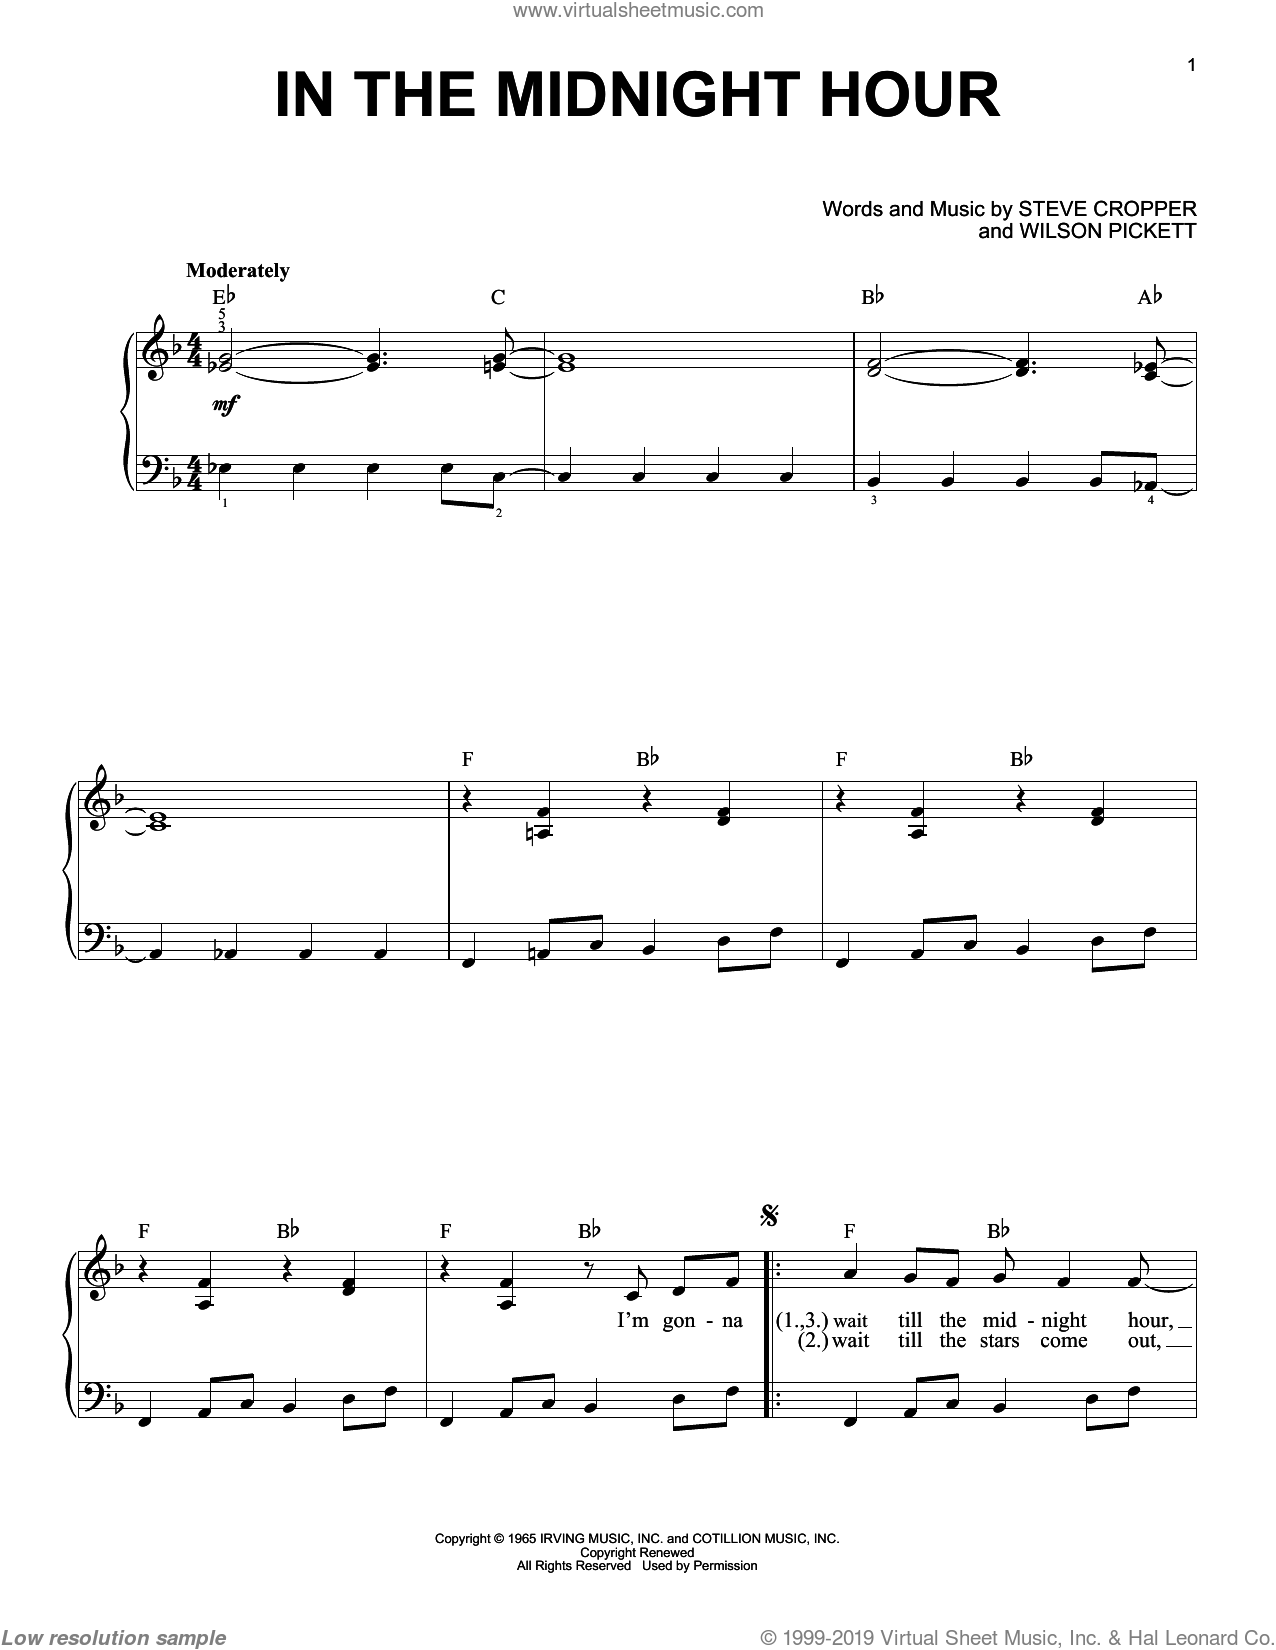 In The Midnight Hour sheet music for piano solo by Steve Cropper and Wilson Pickett